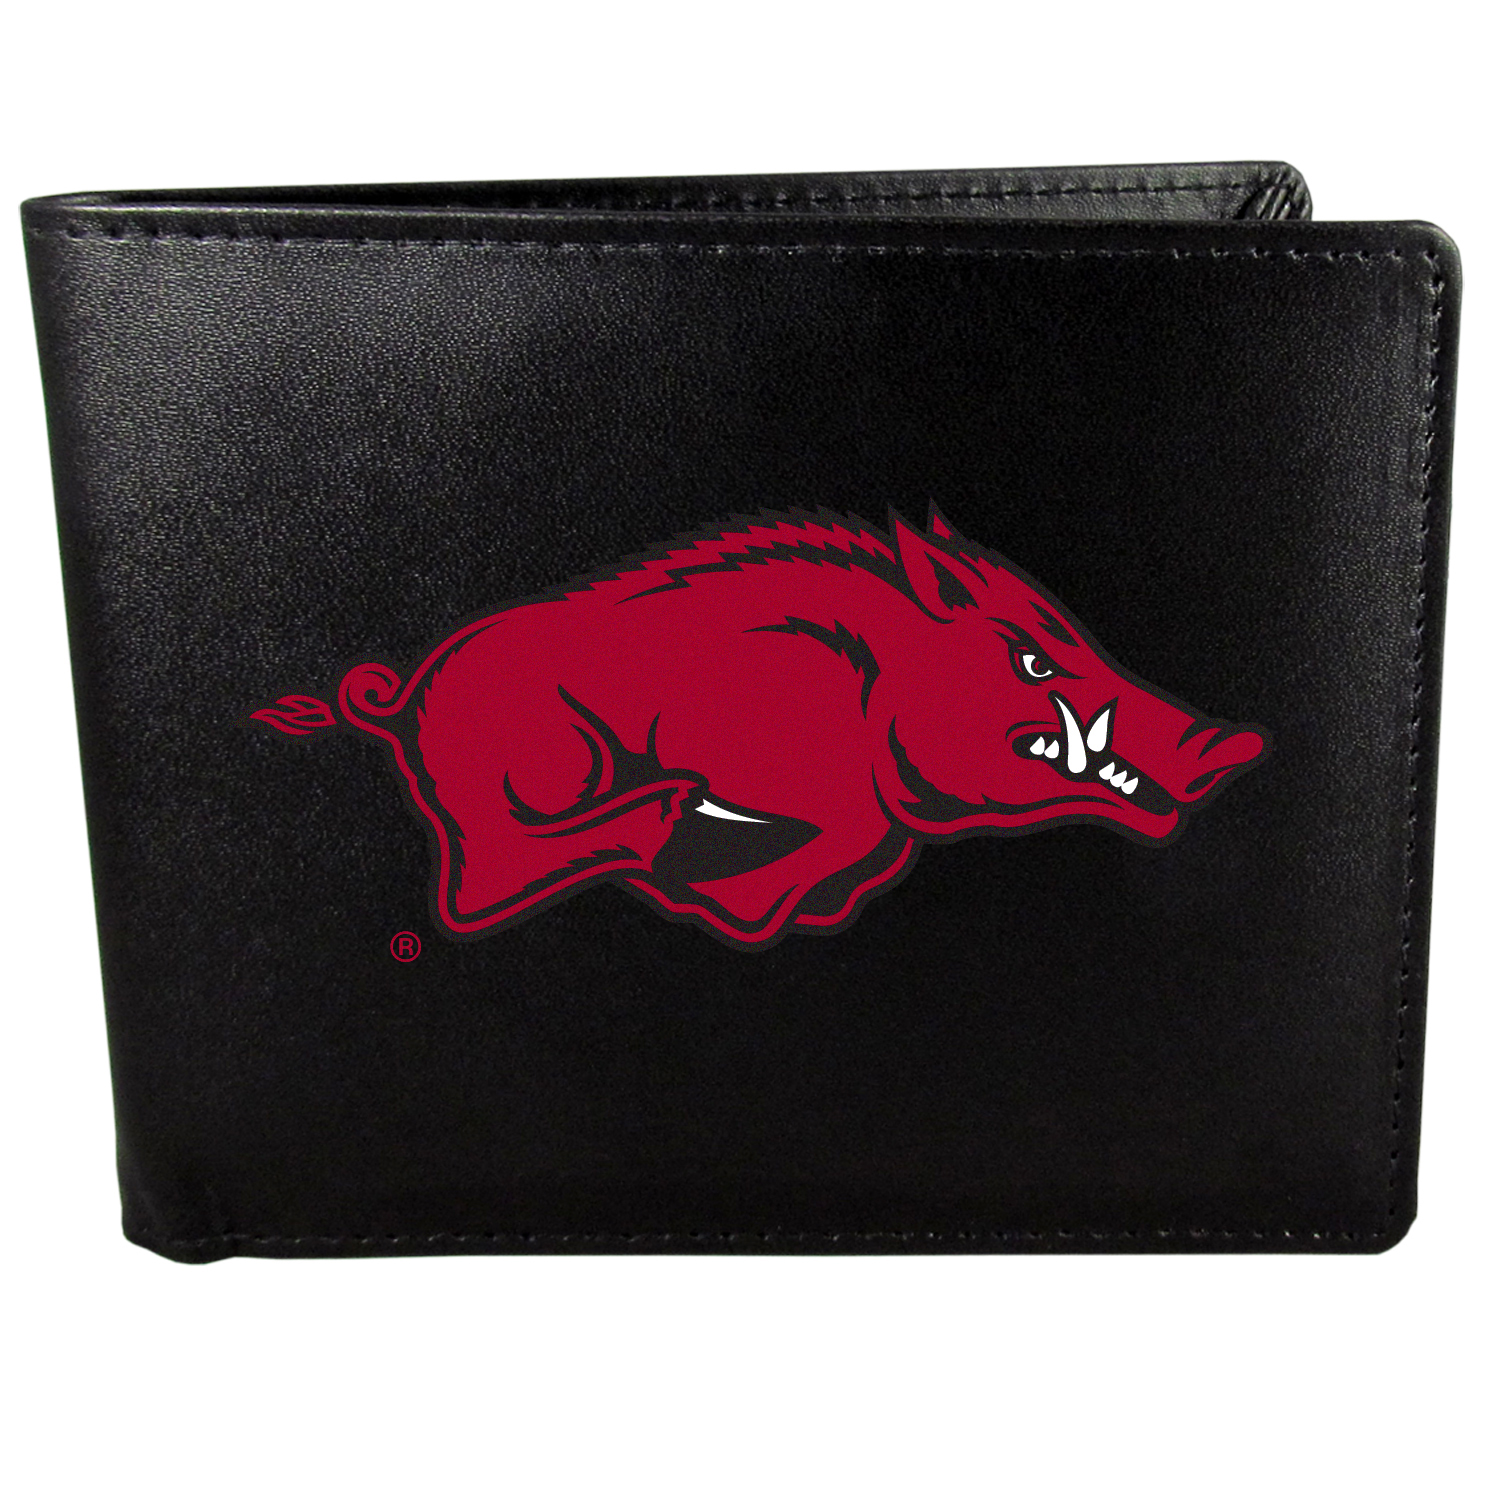 Arkansas Razorbacks Bi-fold Wallet Large Logo - Sports fans do not have to sacrifice style with this classic bi-fold wallet that sports the Arkansas Razorbacks?extra large logo. This men's fashion accessory has a leather grain look and expert craftmanship for a quality wallet at a great price. The wallet features inner credit card slots, windowed ID slot and a large billfold pocket. The front of the wallet features a printed team logo.